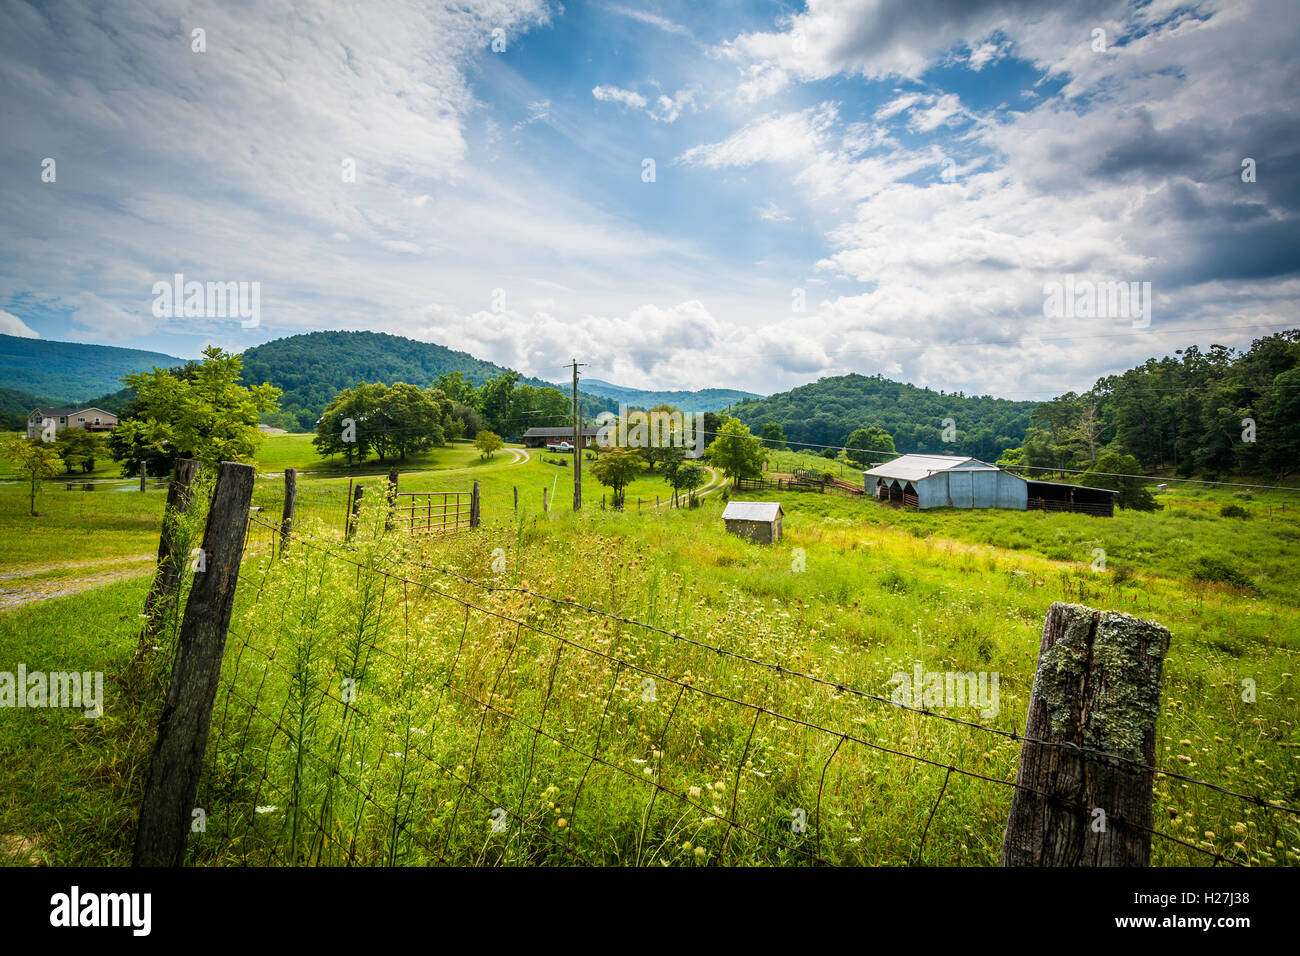 Fence and view of a farm in rural Shenandoah Valley of Virginia. - Stock Image